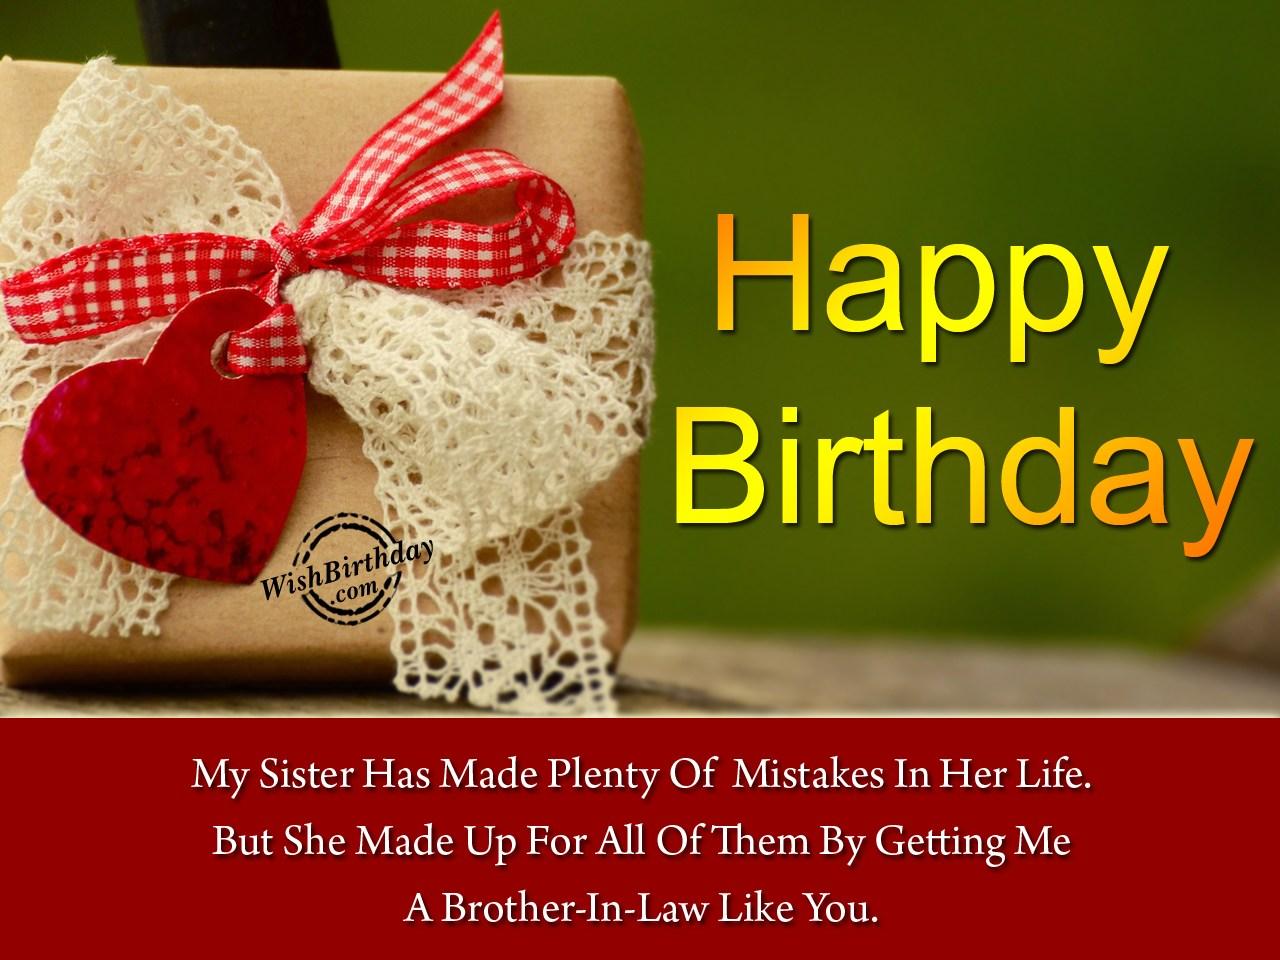 Birthday wishes for brother in law birthday images pictures a brother in law like you happy m4hsunfo